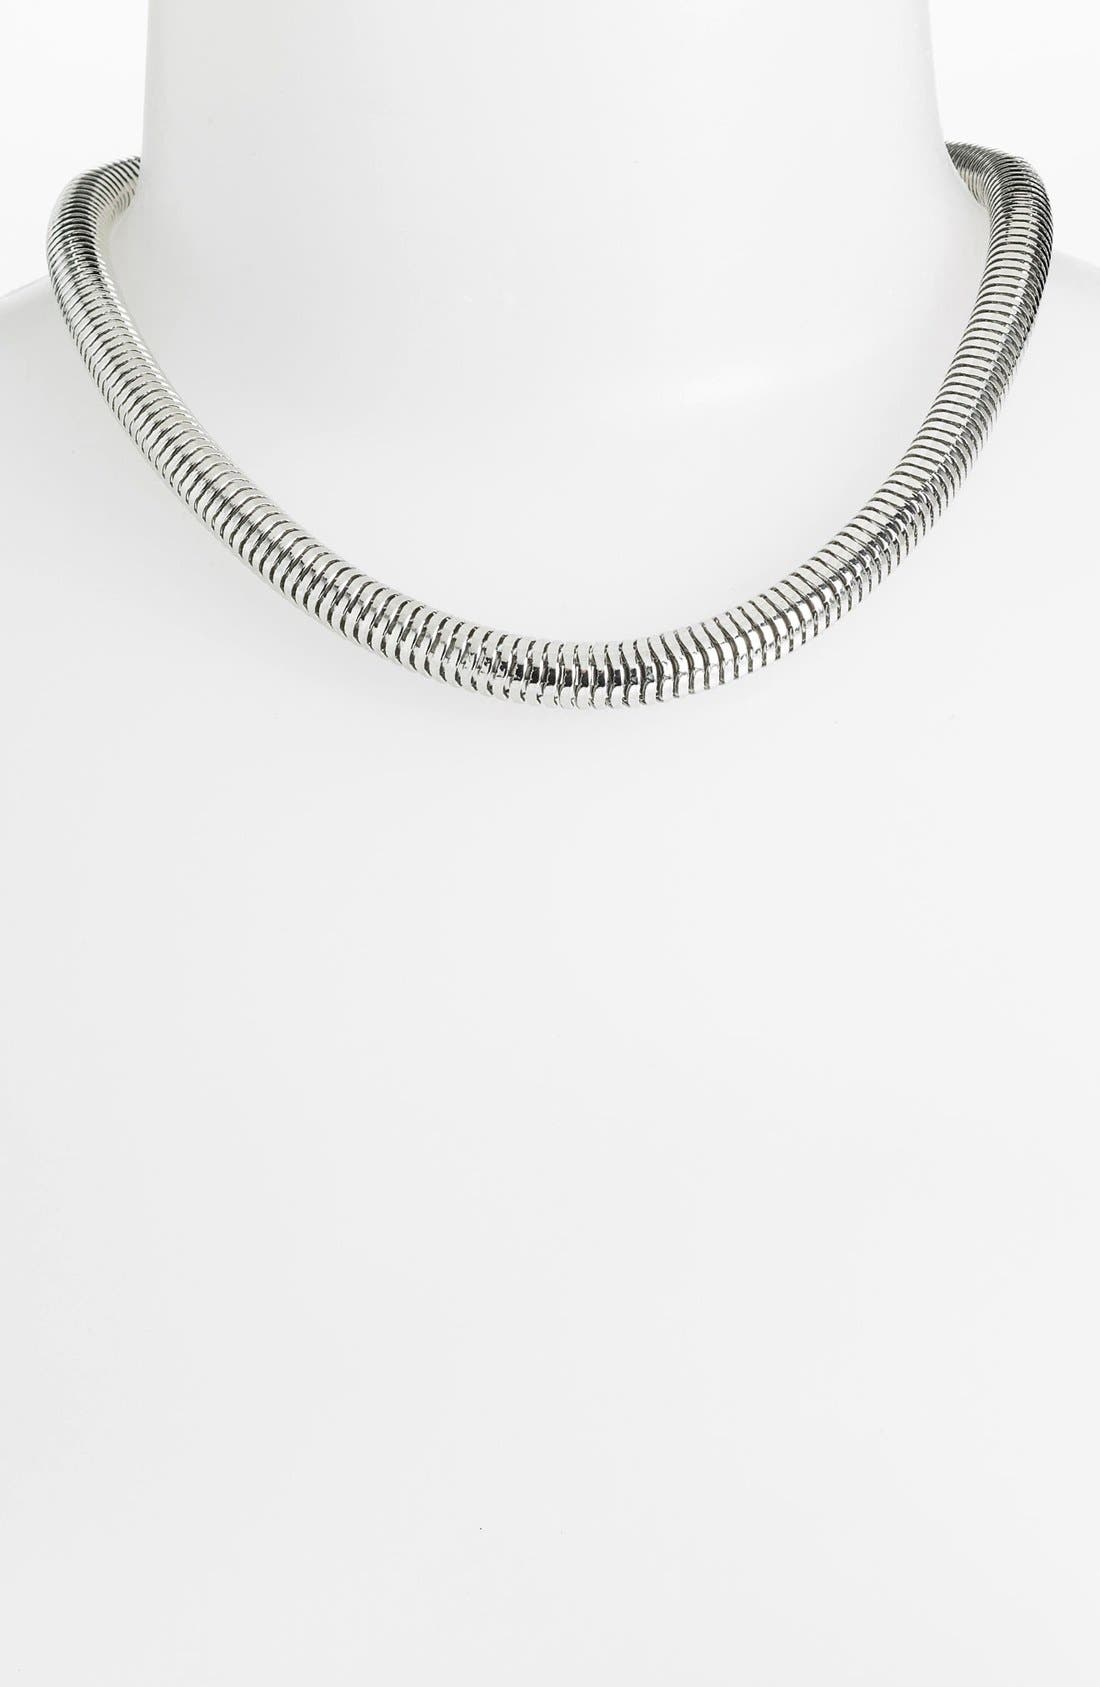 Main Image - Vince Camuto Snake Chain Necklace